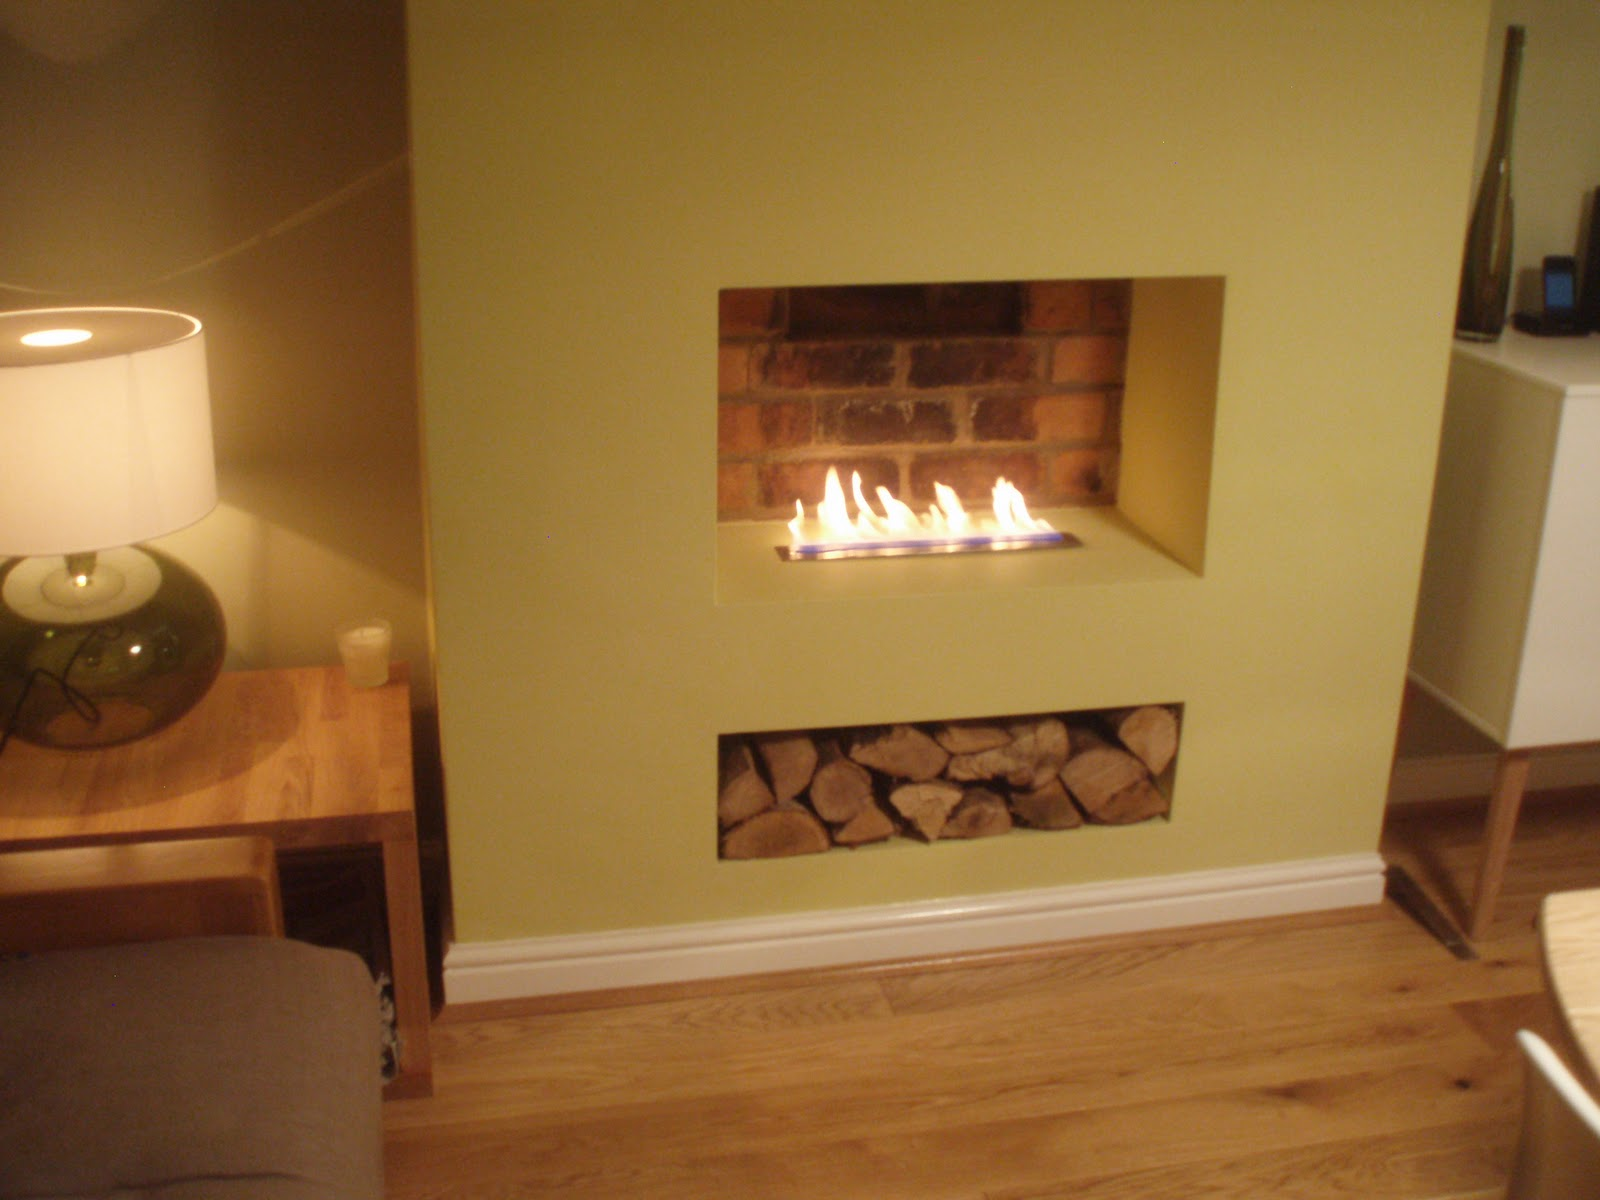 Gel Fireplaces - Bio Fires - Official company blog: DIY fireplace ...